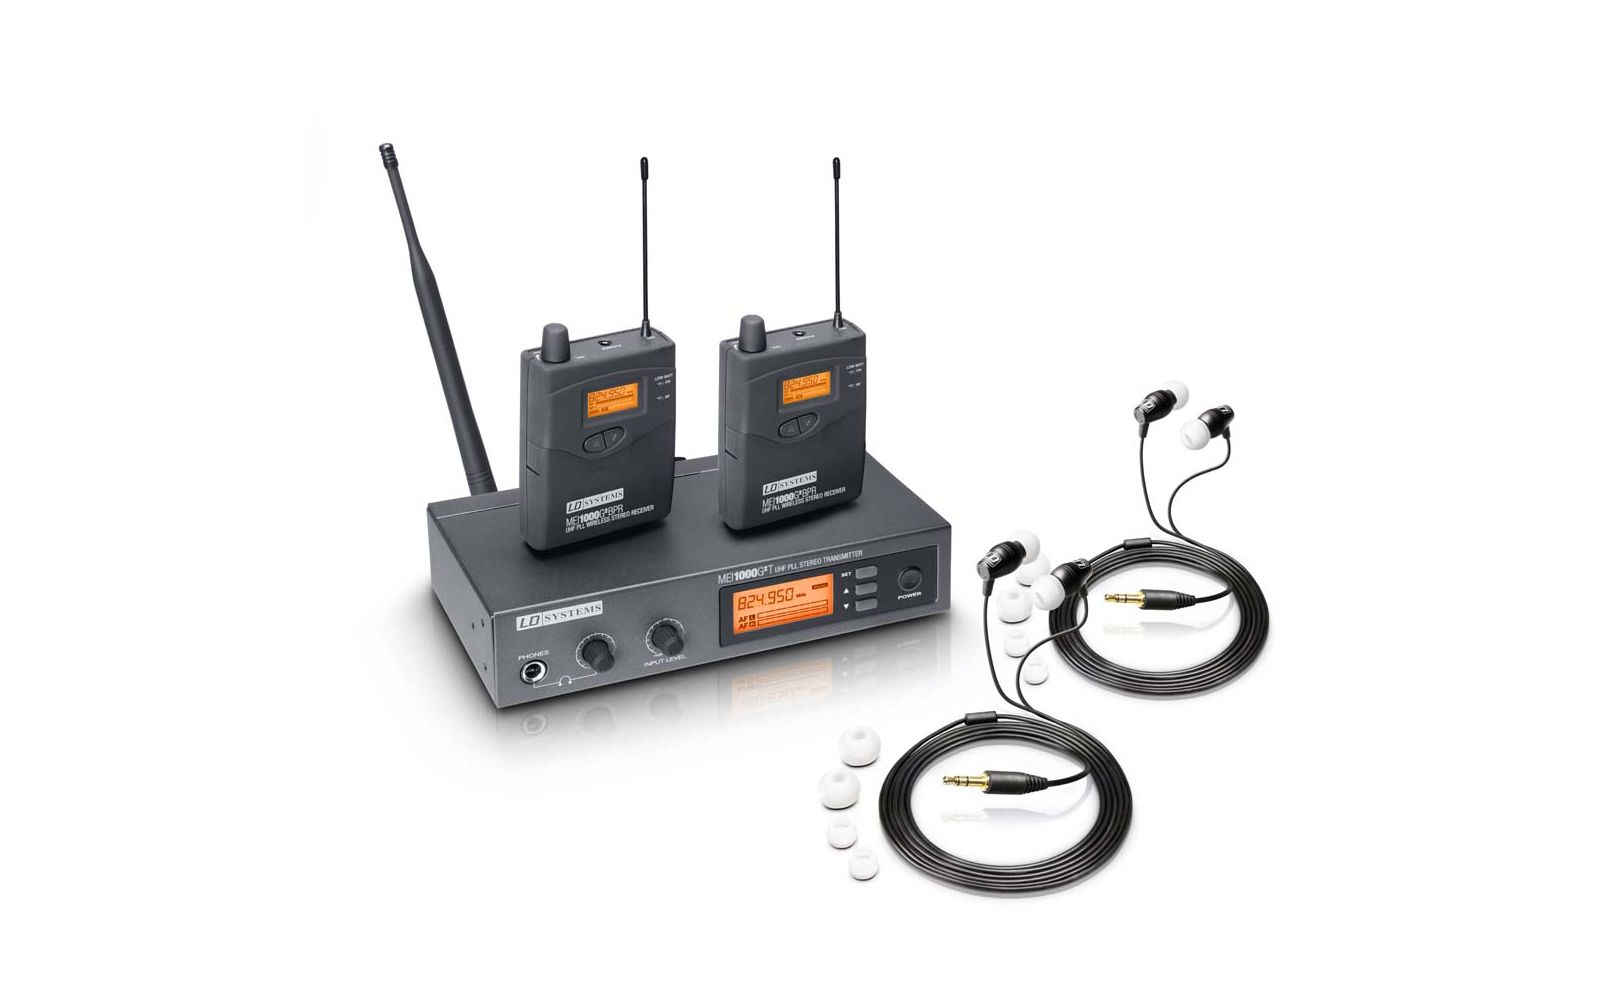 ld-systems-mei-1000-g2-in-ear-monitoring-system-drahtlos